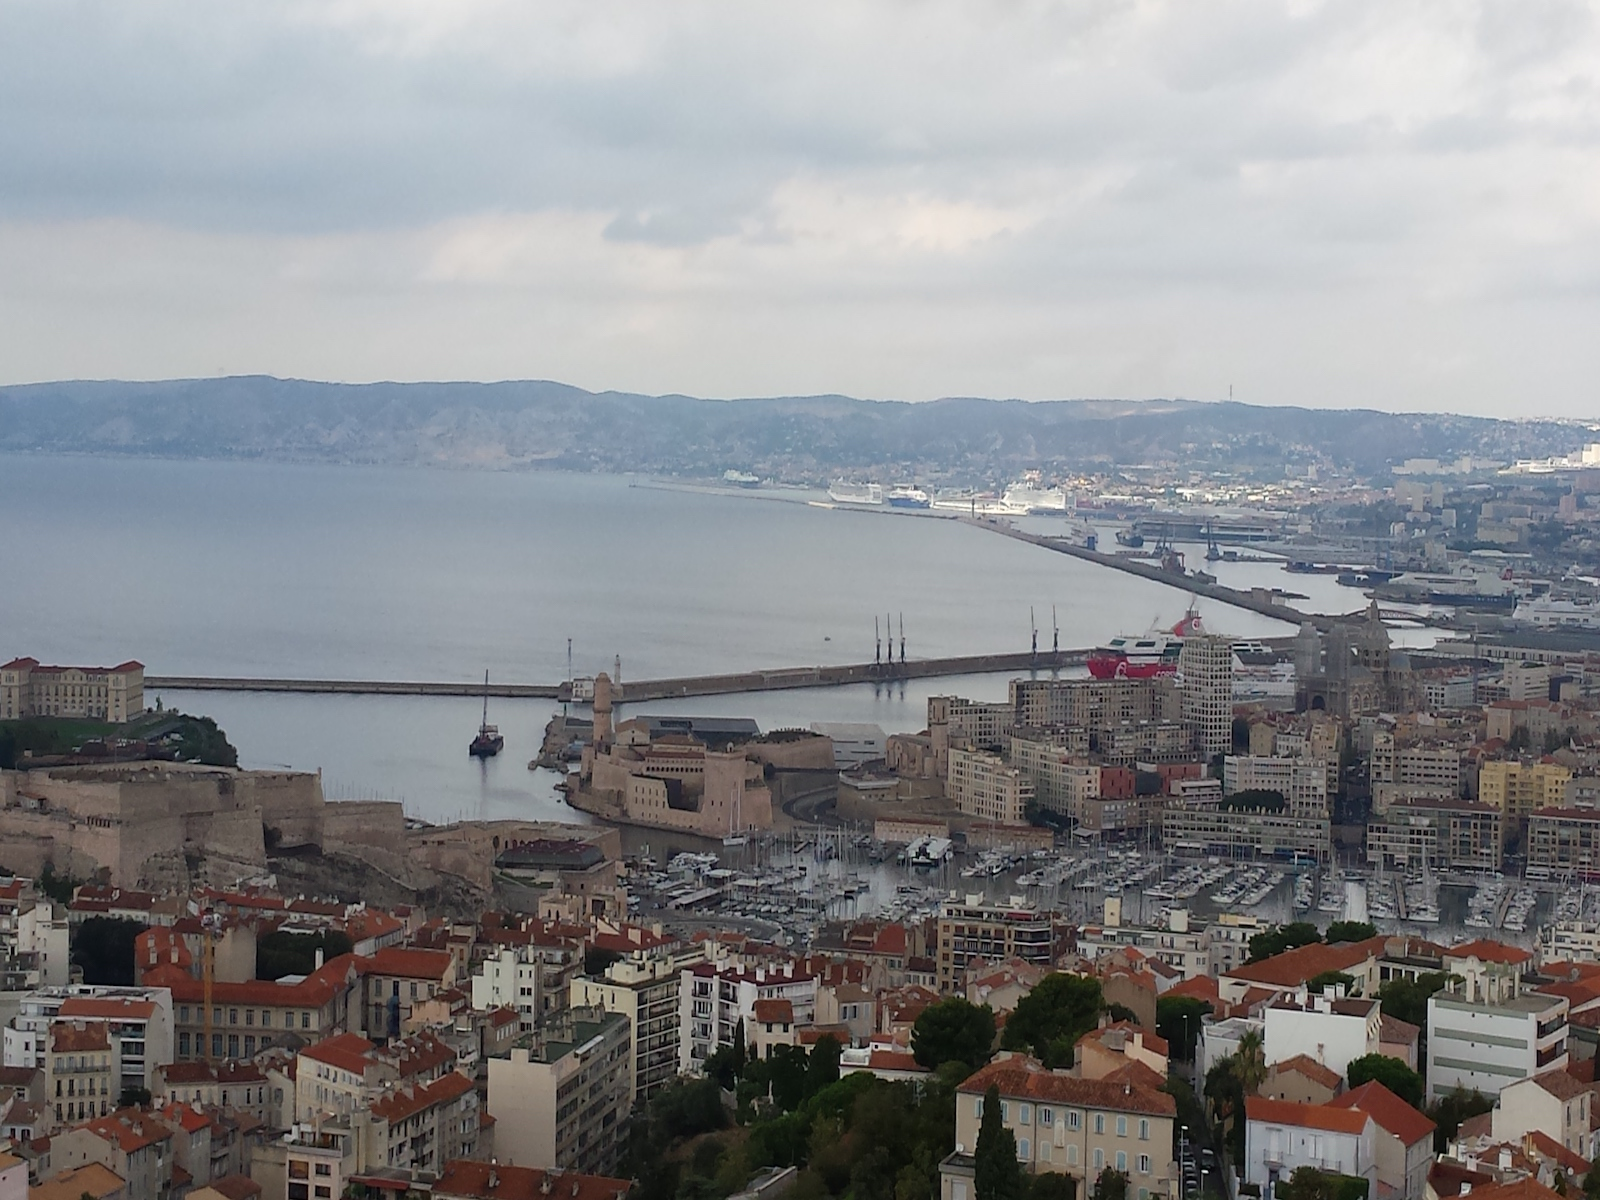 marseille-france-vieux-port-view-point-tourameo